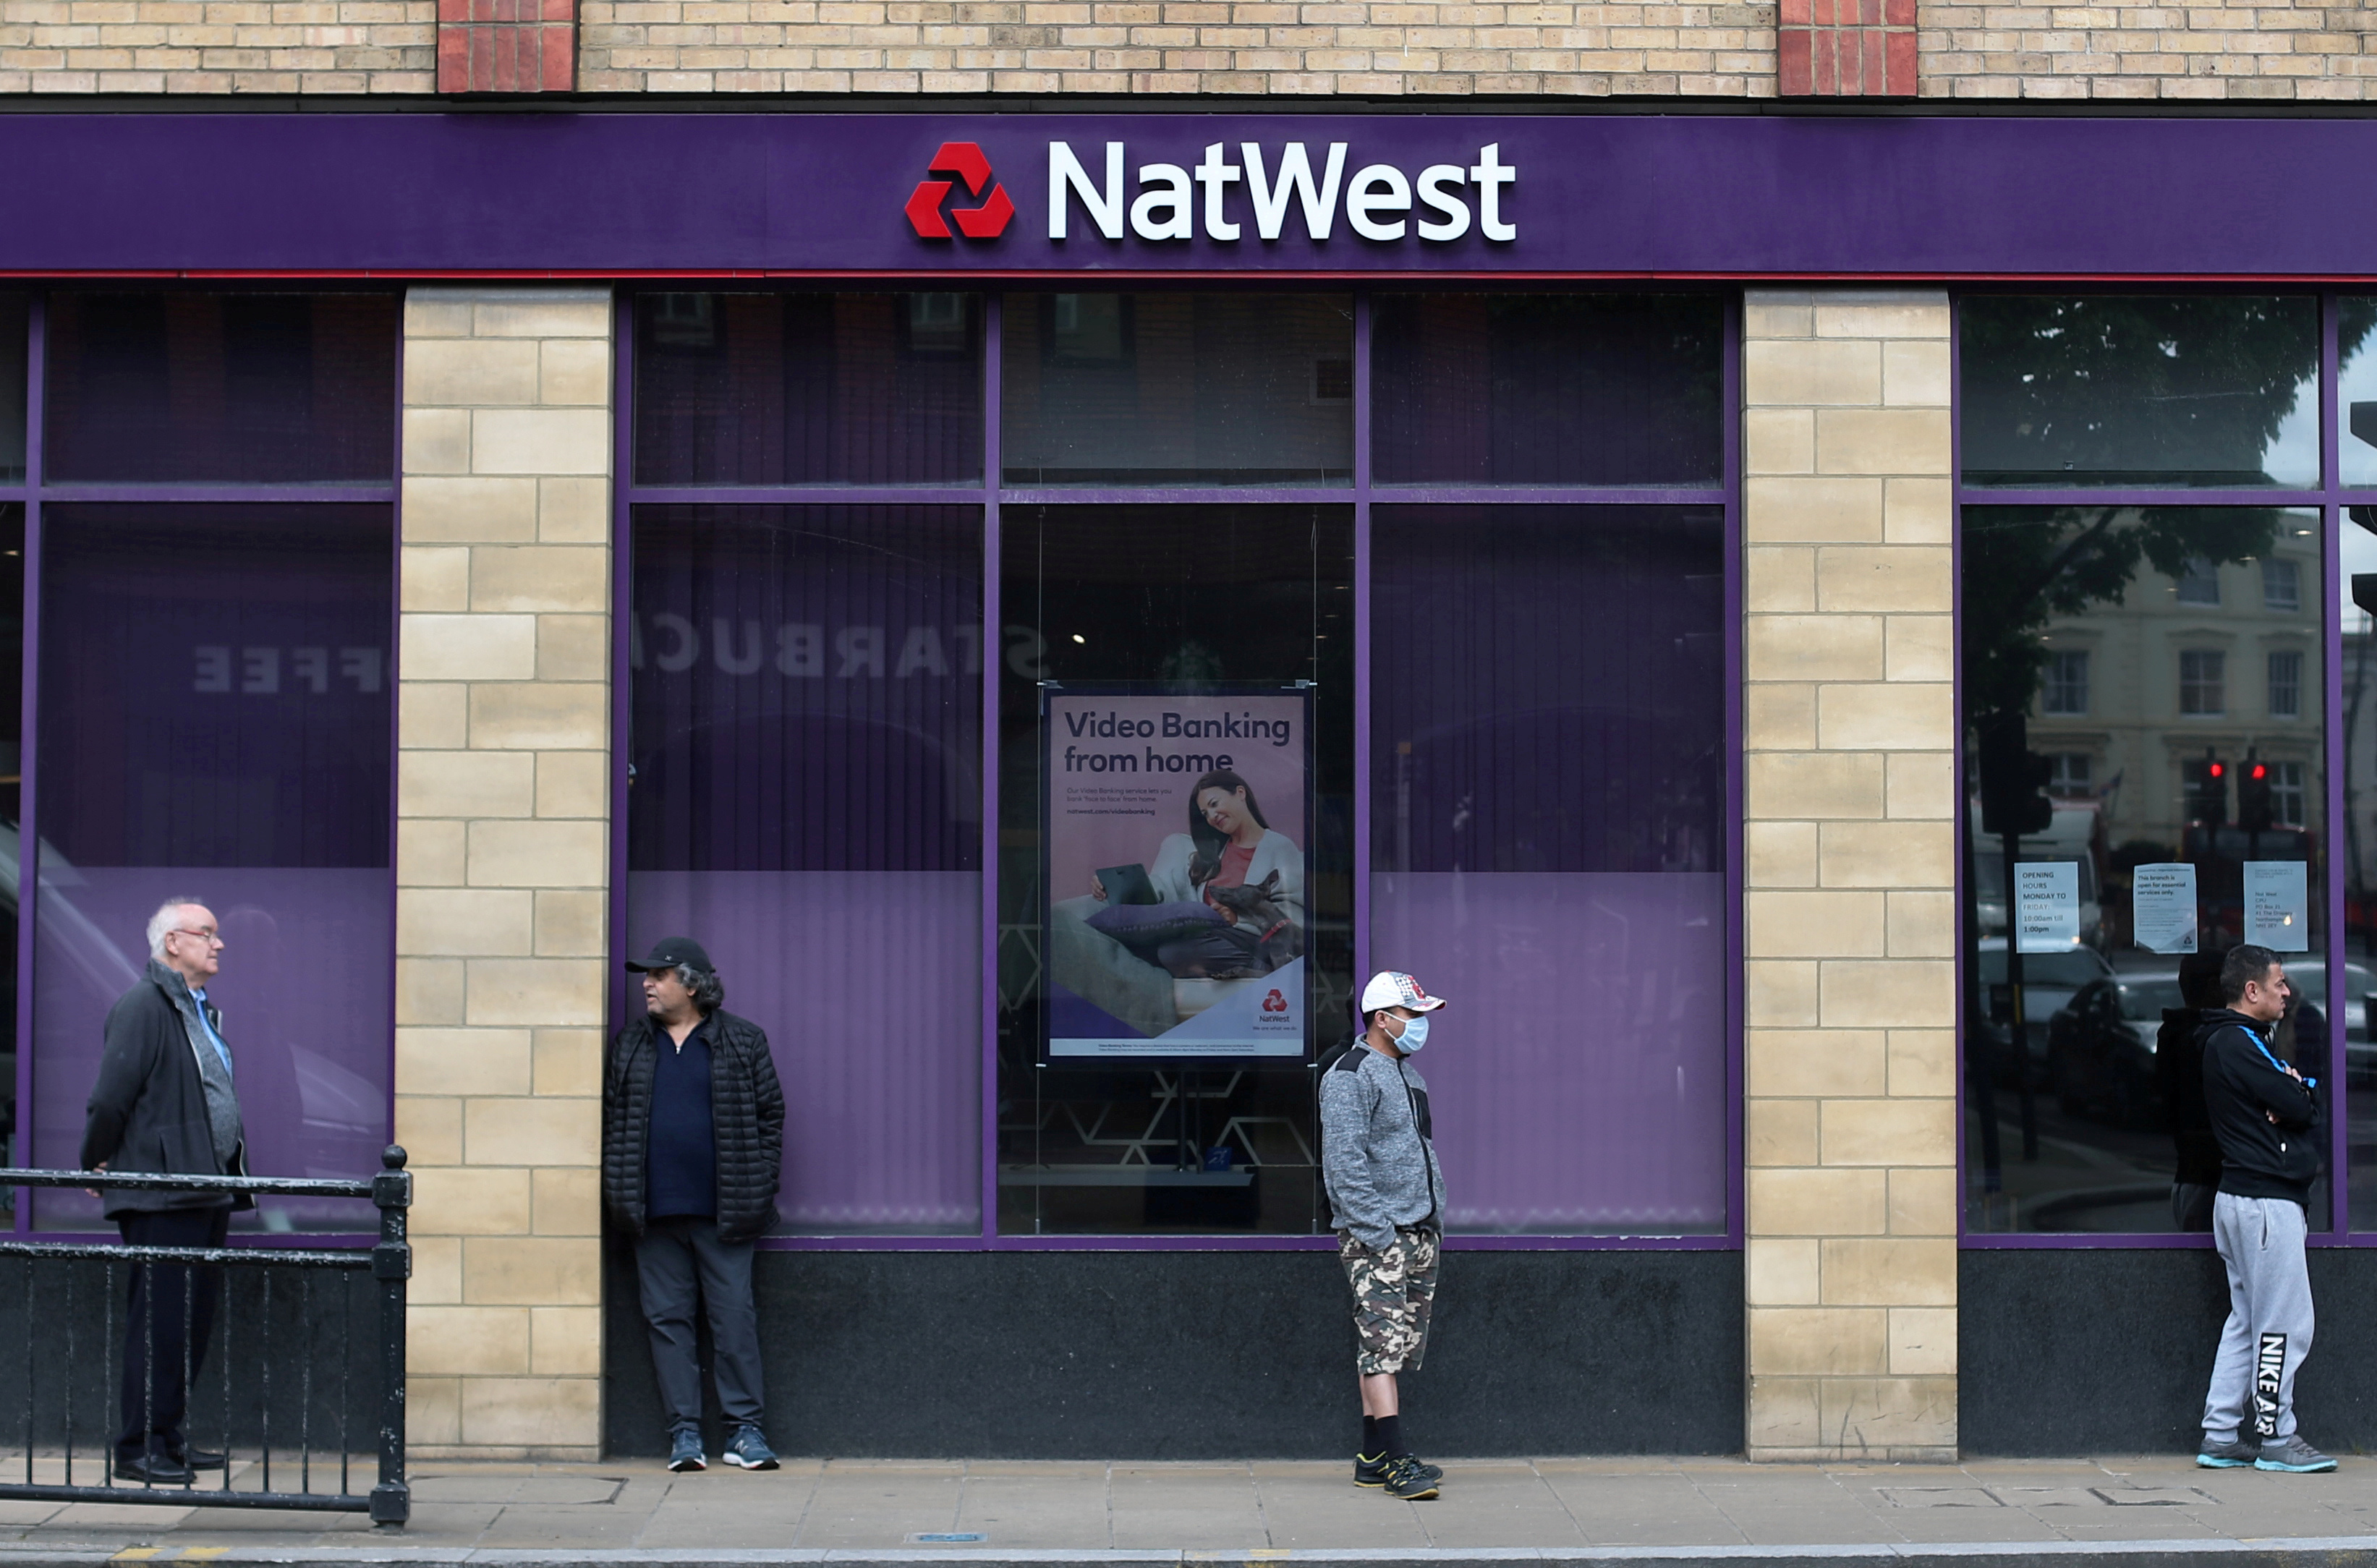 People maintain social distance while they queue outside a Natwest bank in Wimbledon in London, Britain, May 1, 2020. REUTERS/Hannah McKay